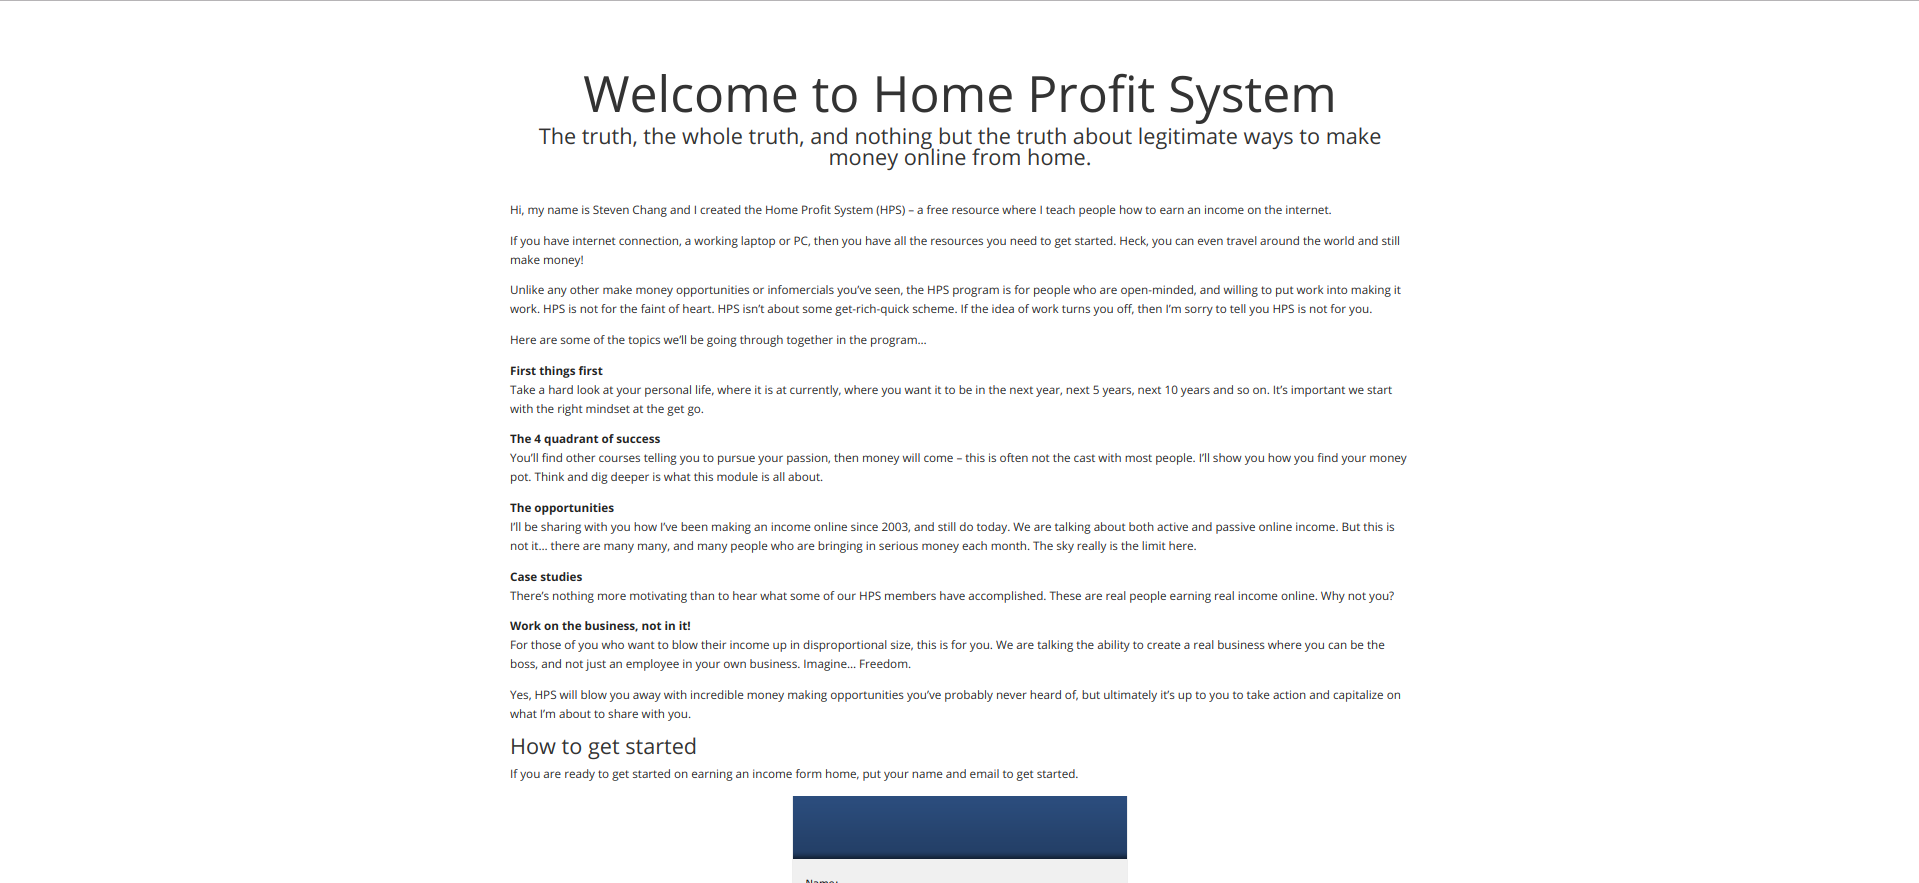 Home Profit System Official Website